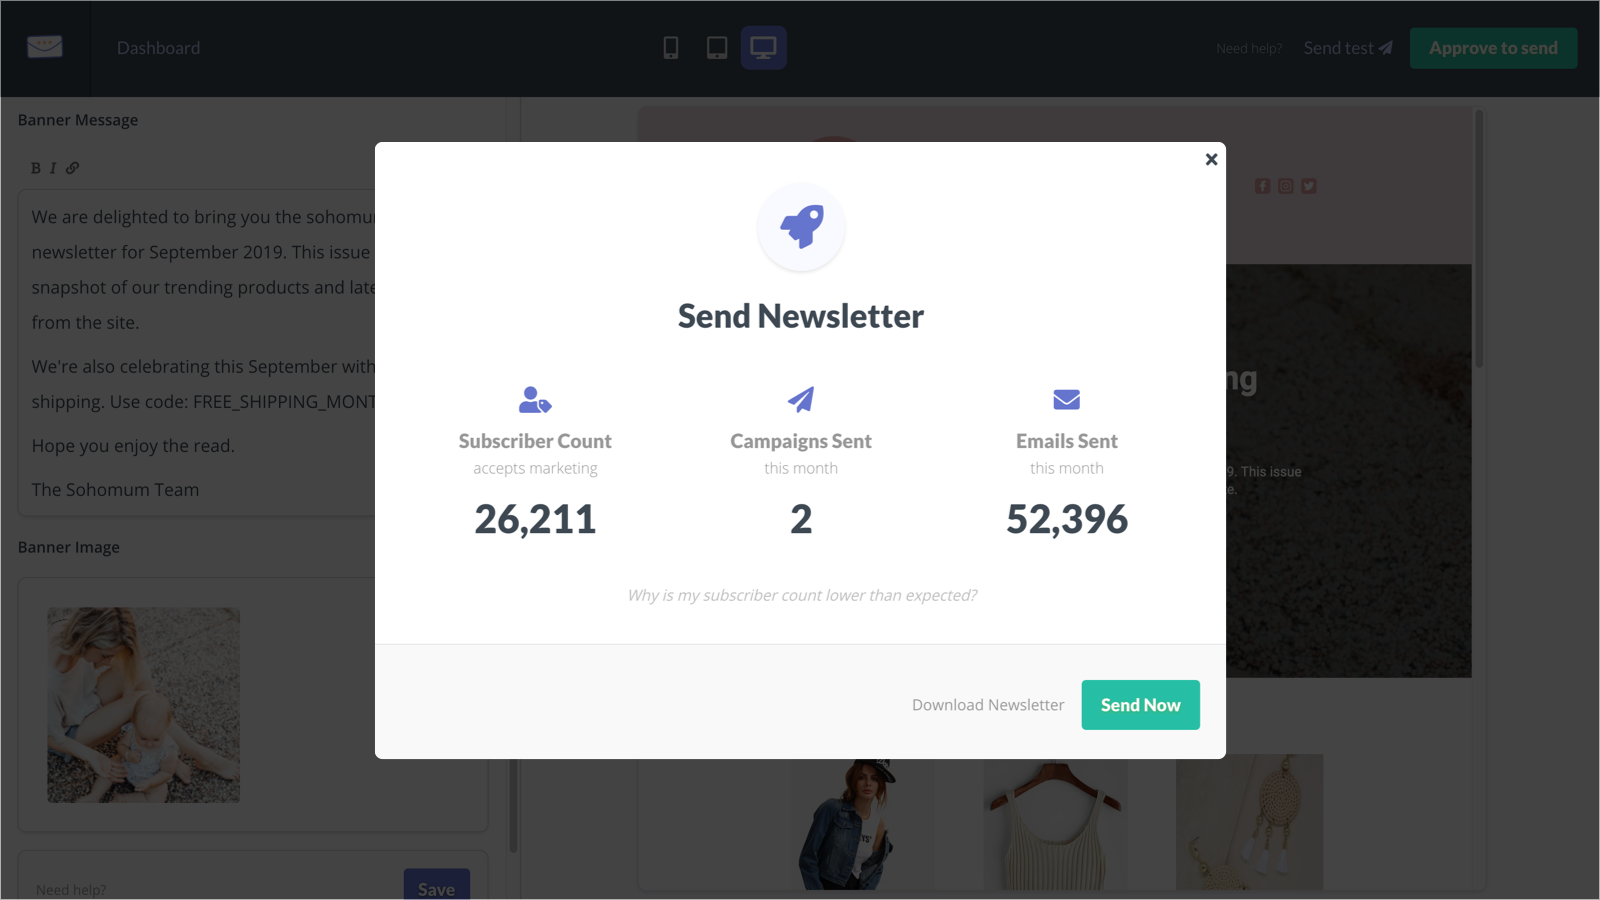 Approve content, then export or send newsletters